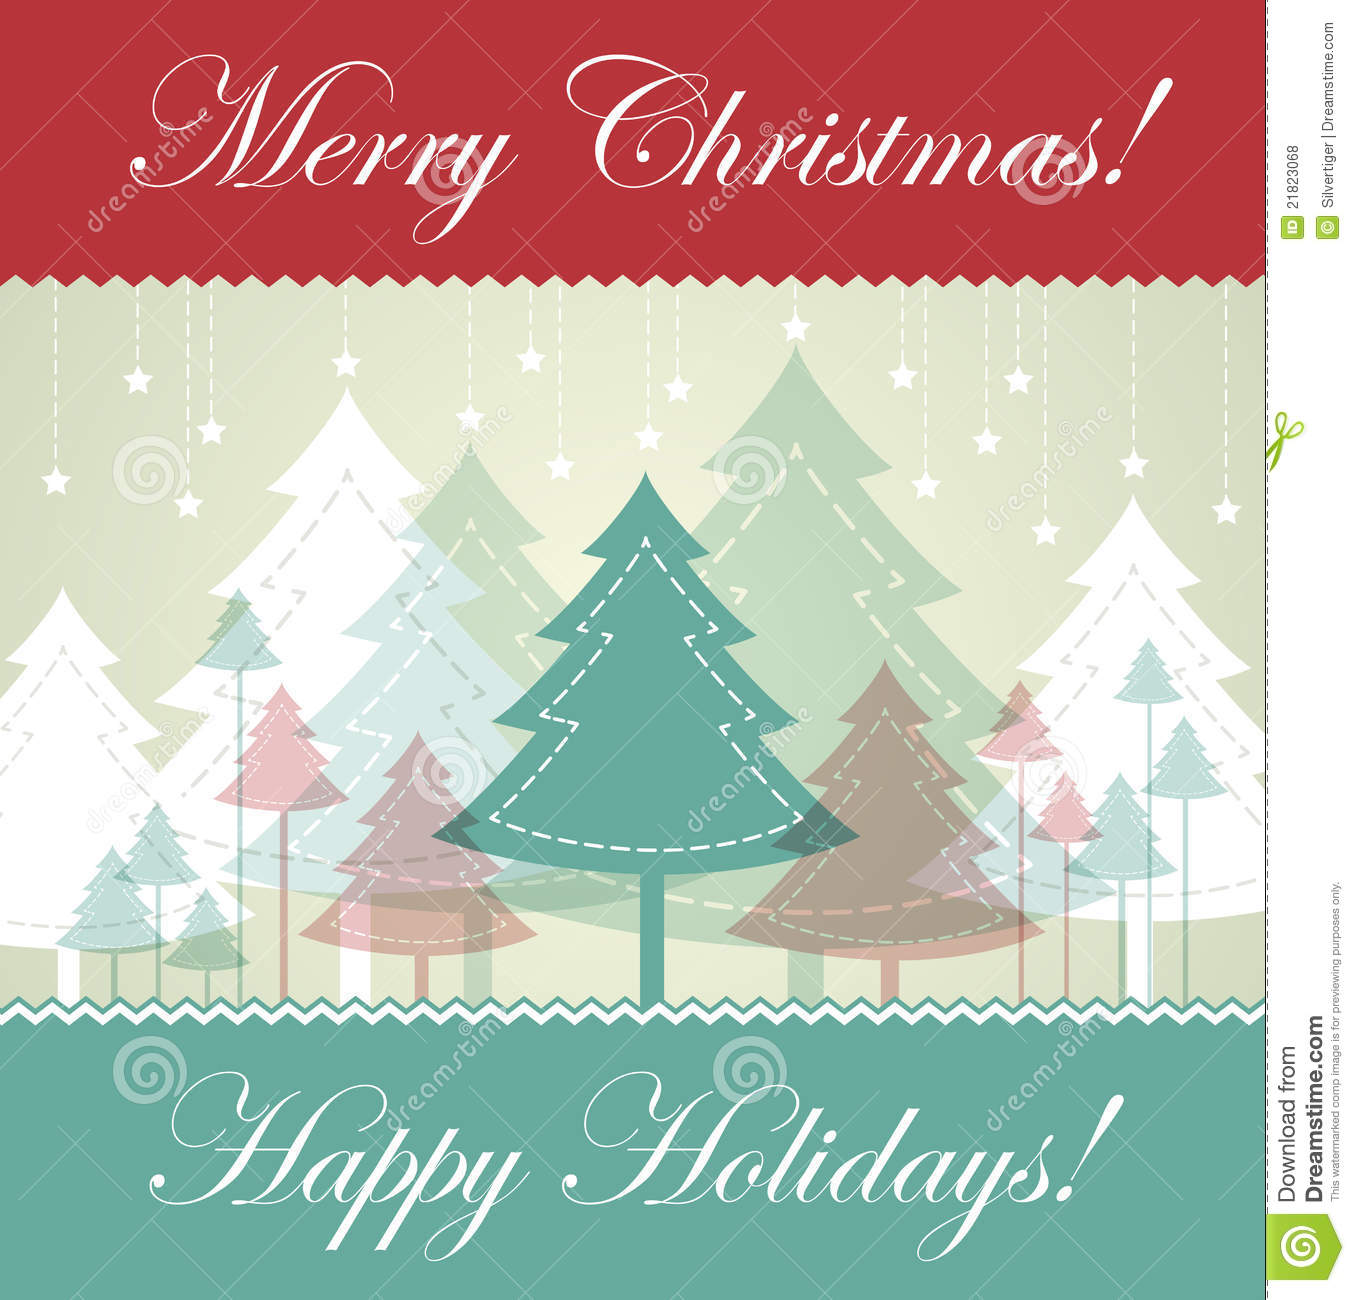 Vintage Christmas card stock vector. Image of cover ...